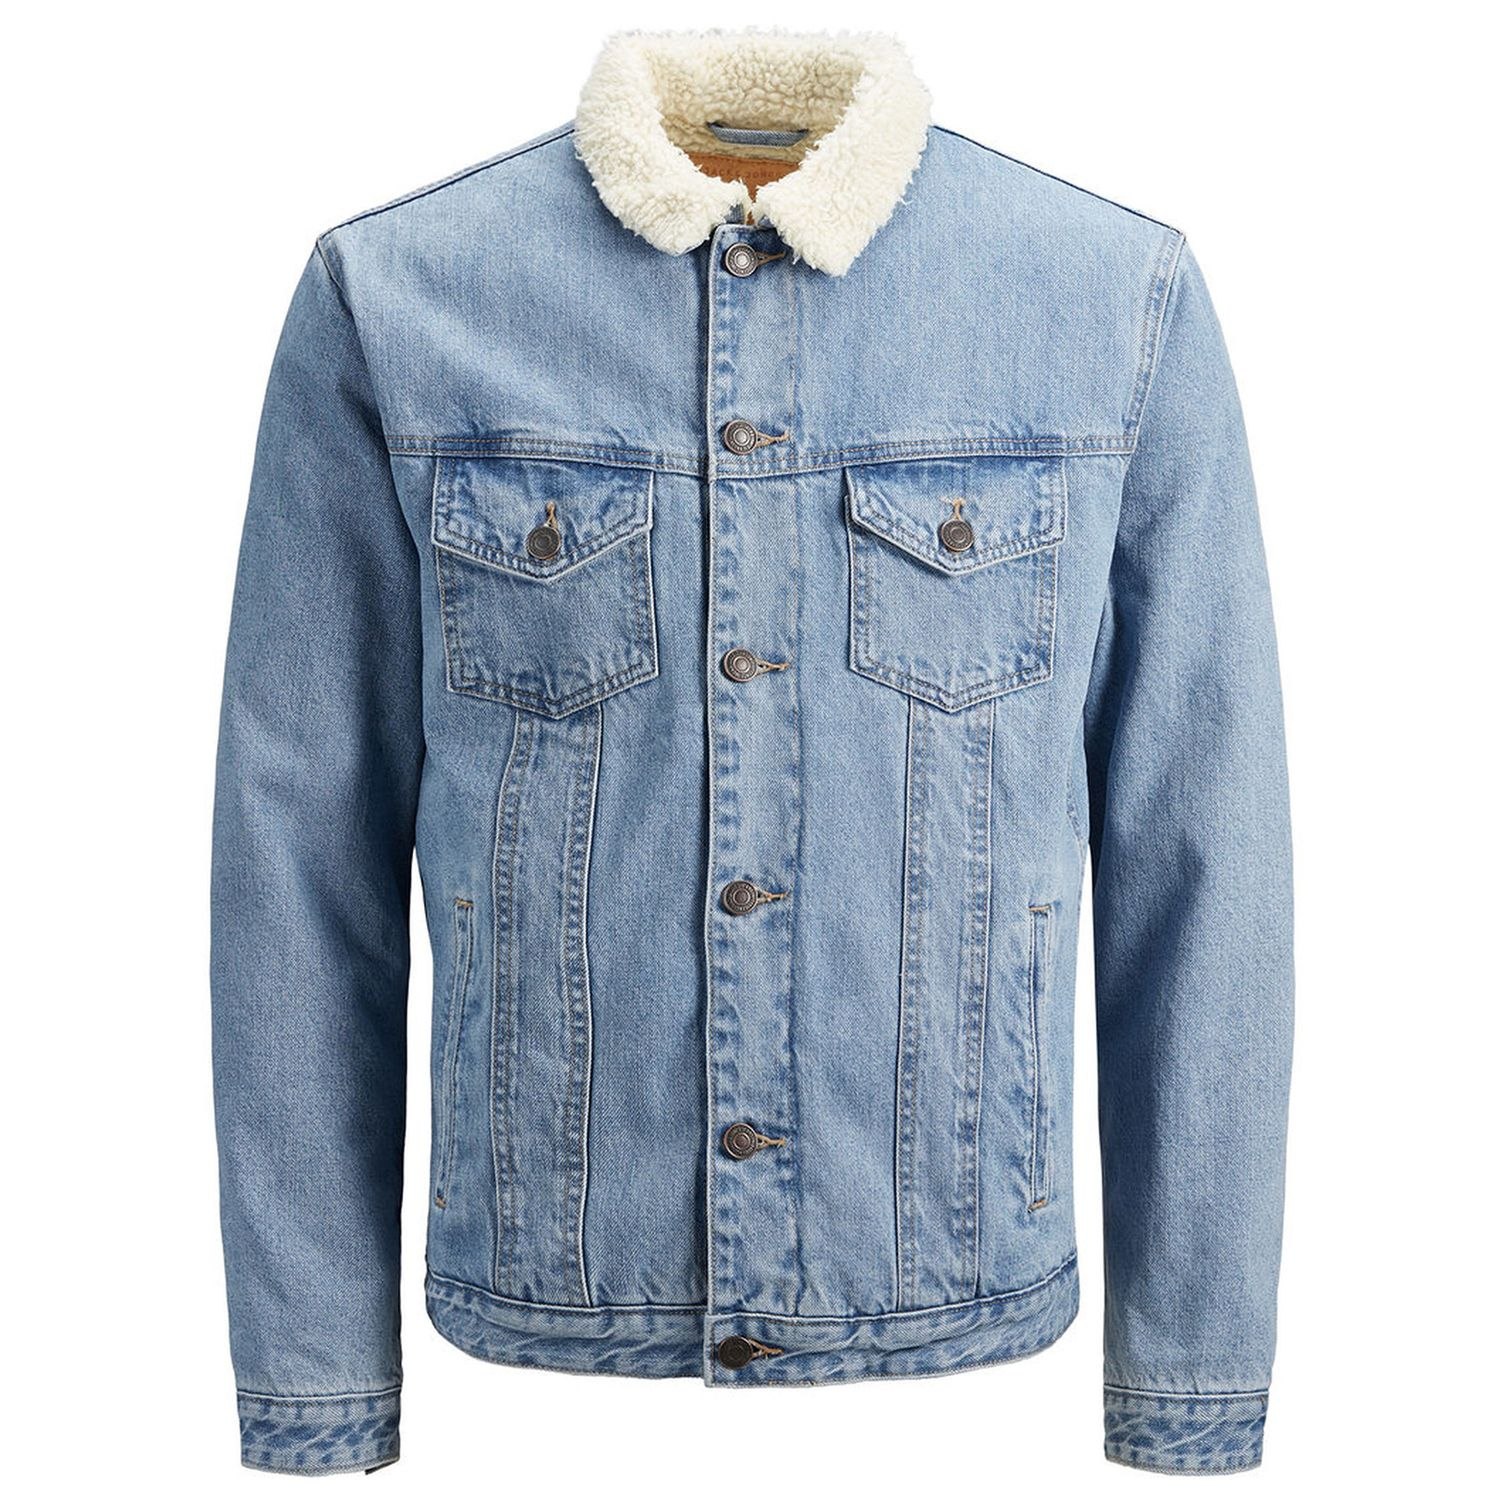 Jack Amp Jones Jeans Jacket Jeansjacke Herrenjacke Mit Fell